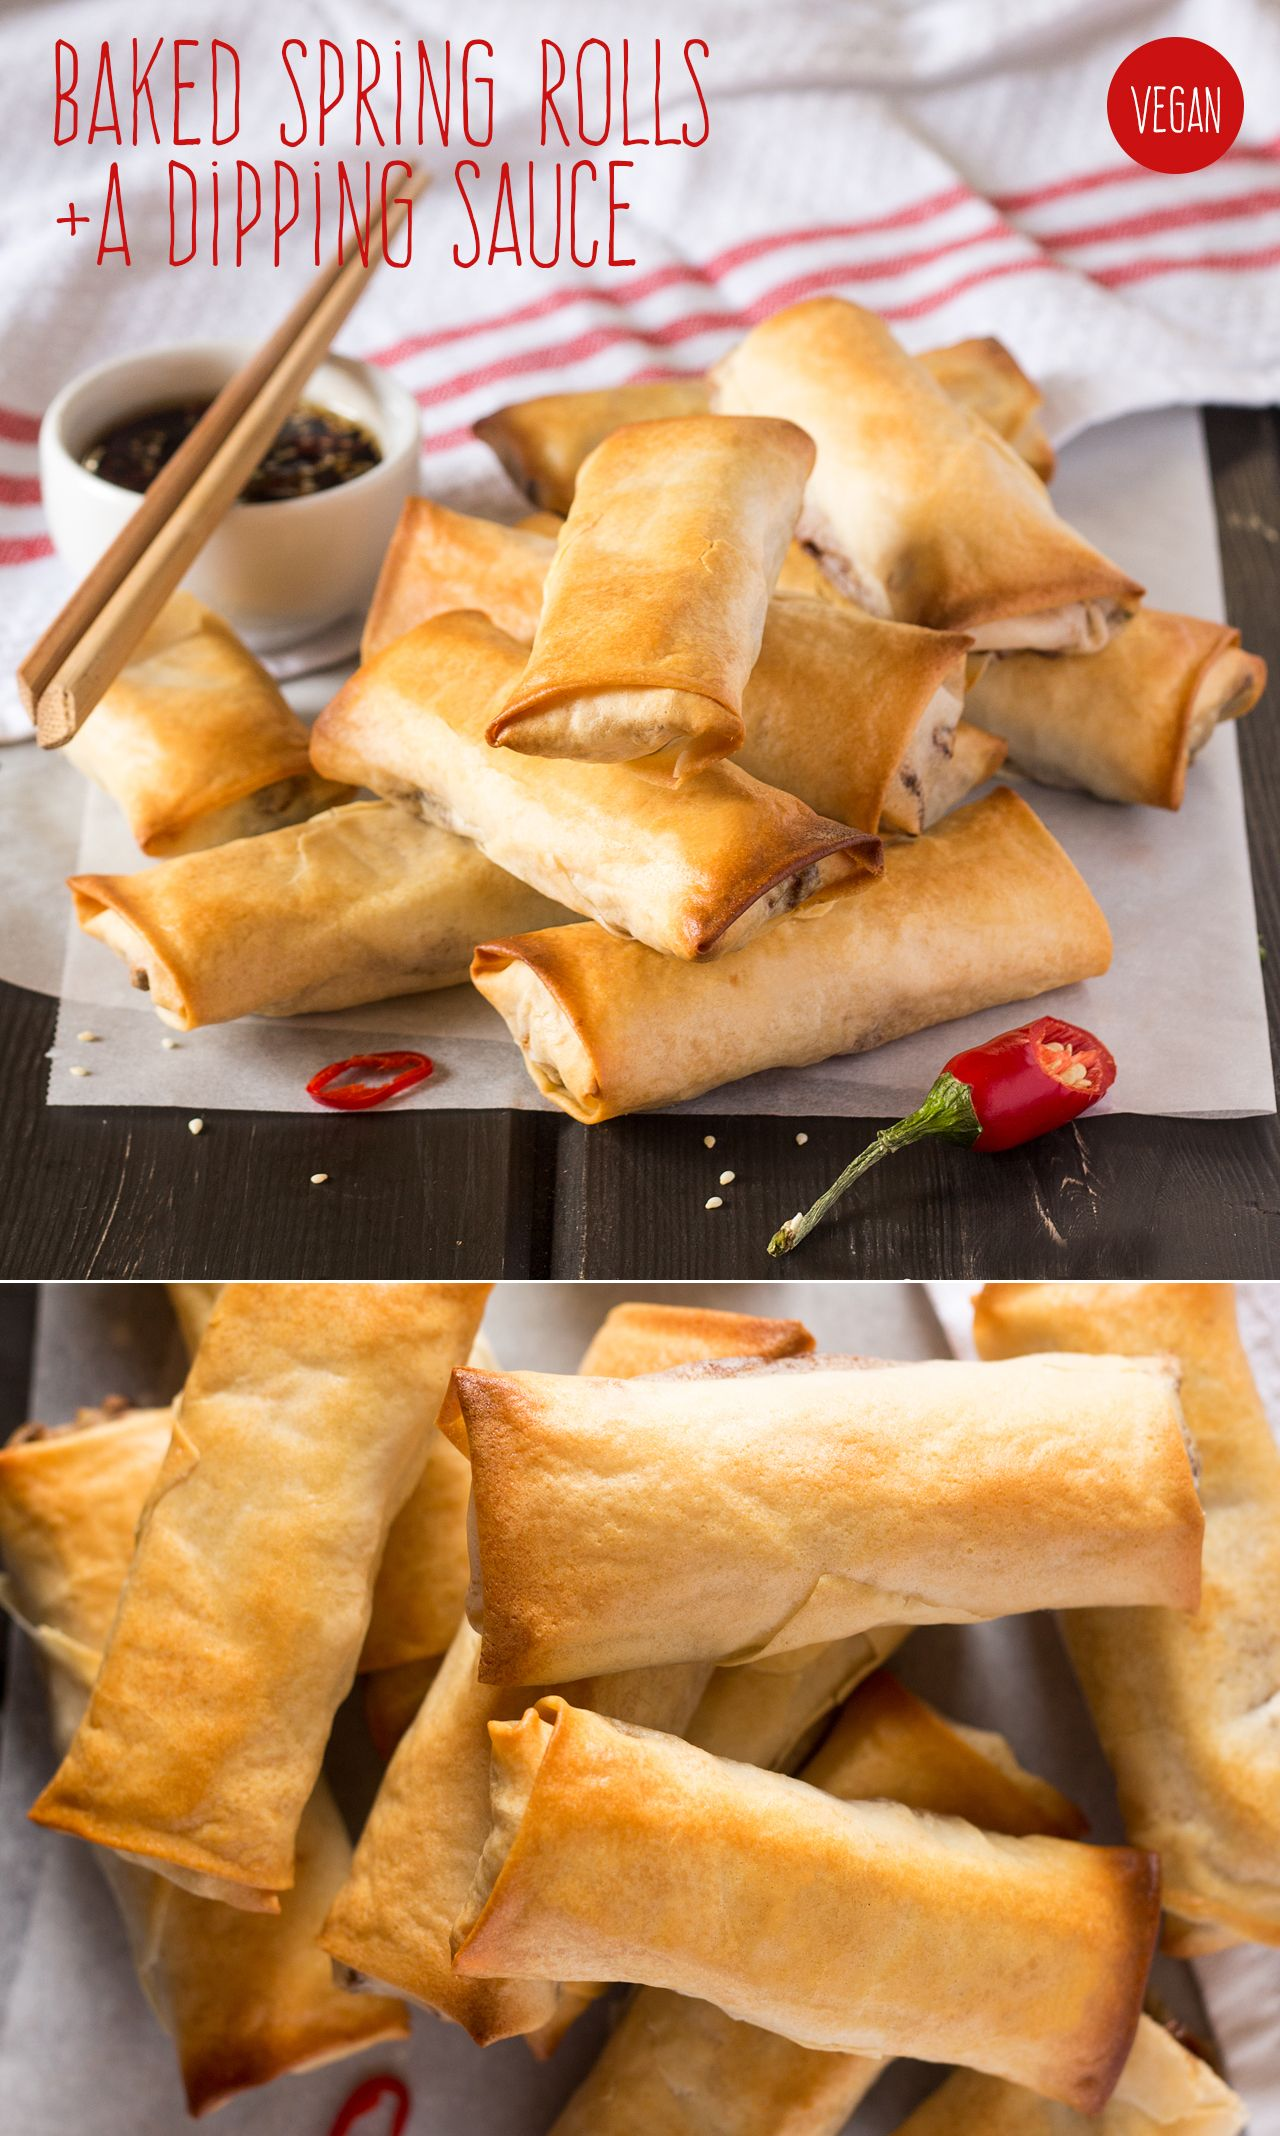 Vegan Baked Spring Rolls With A Dipping Sauce